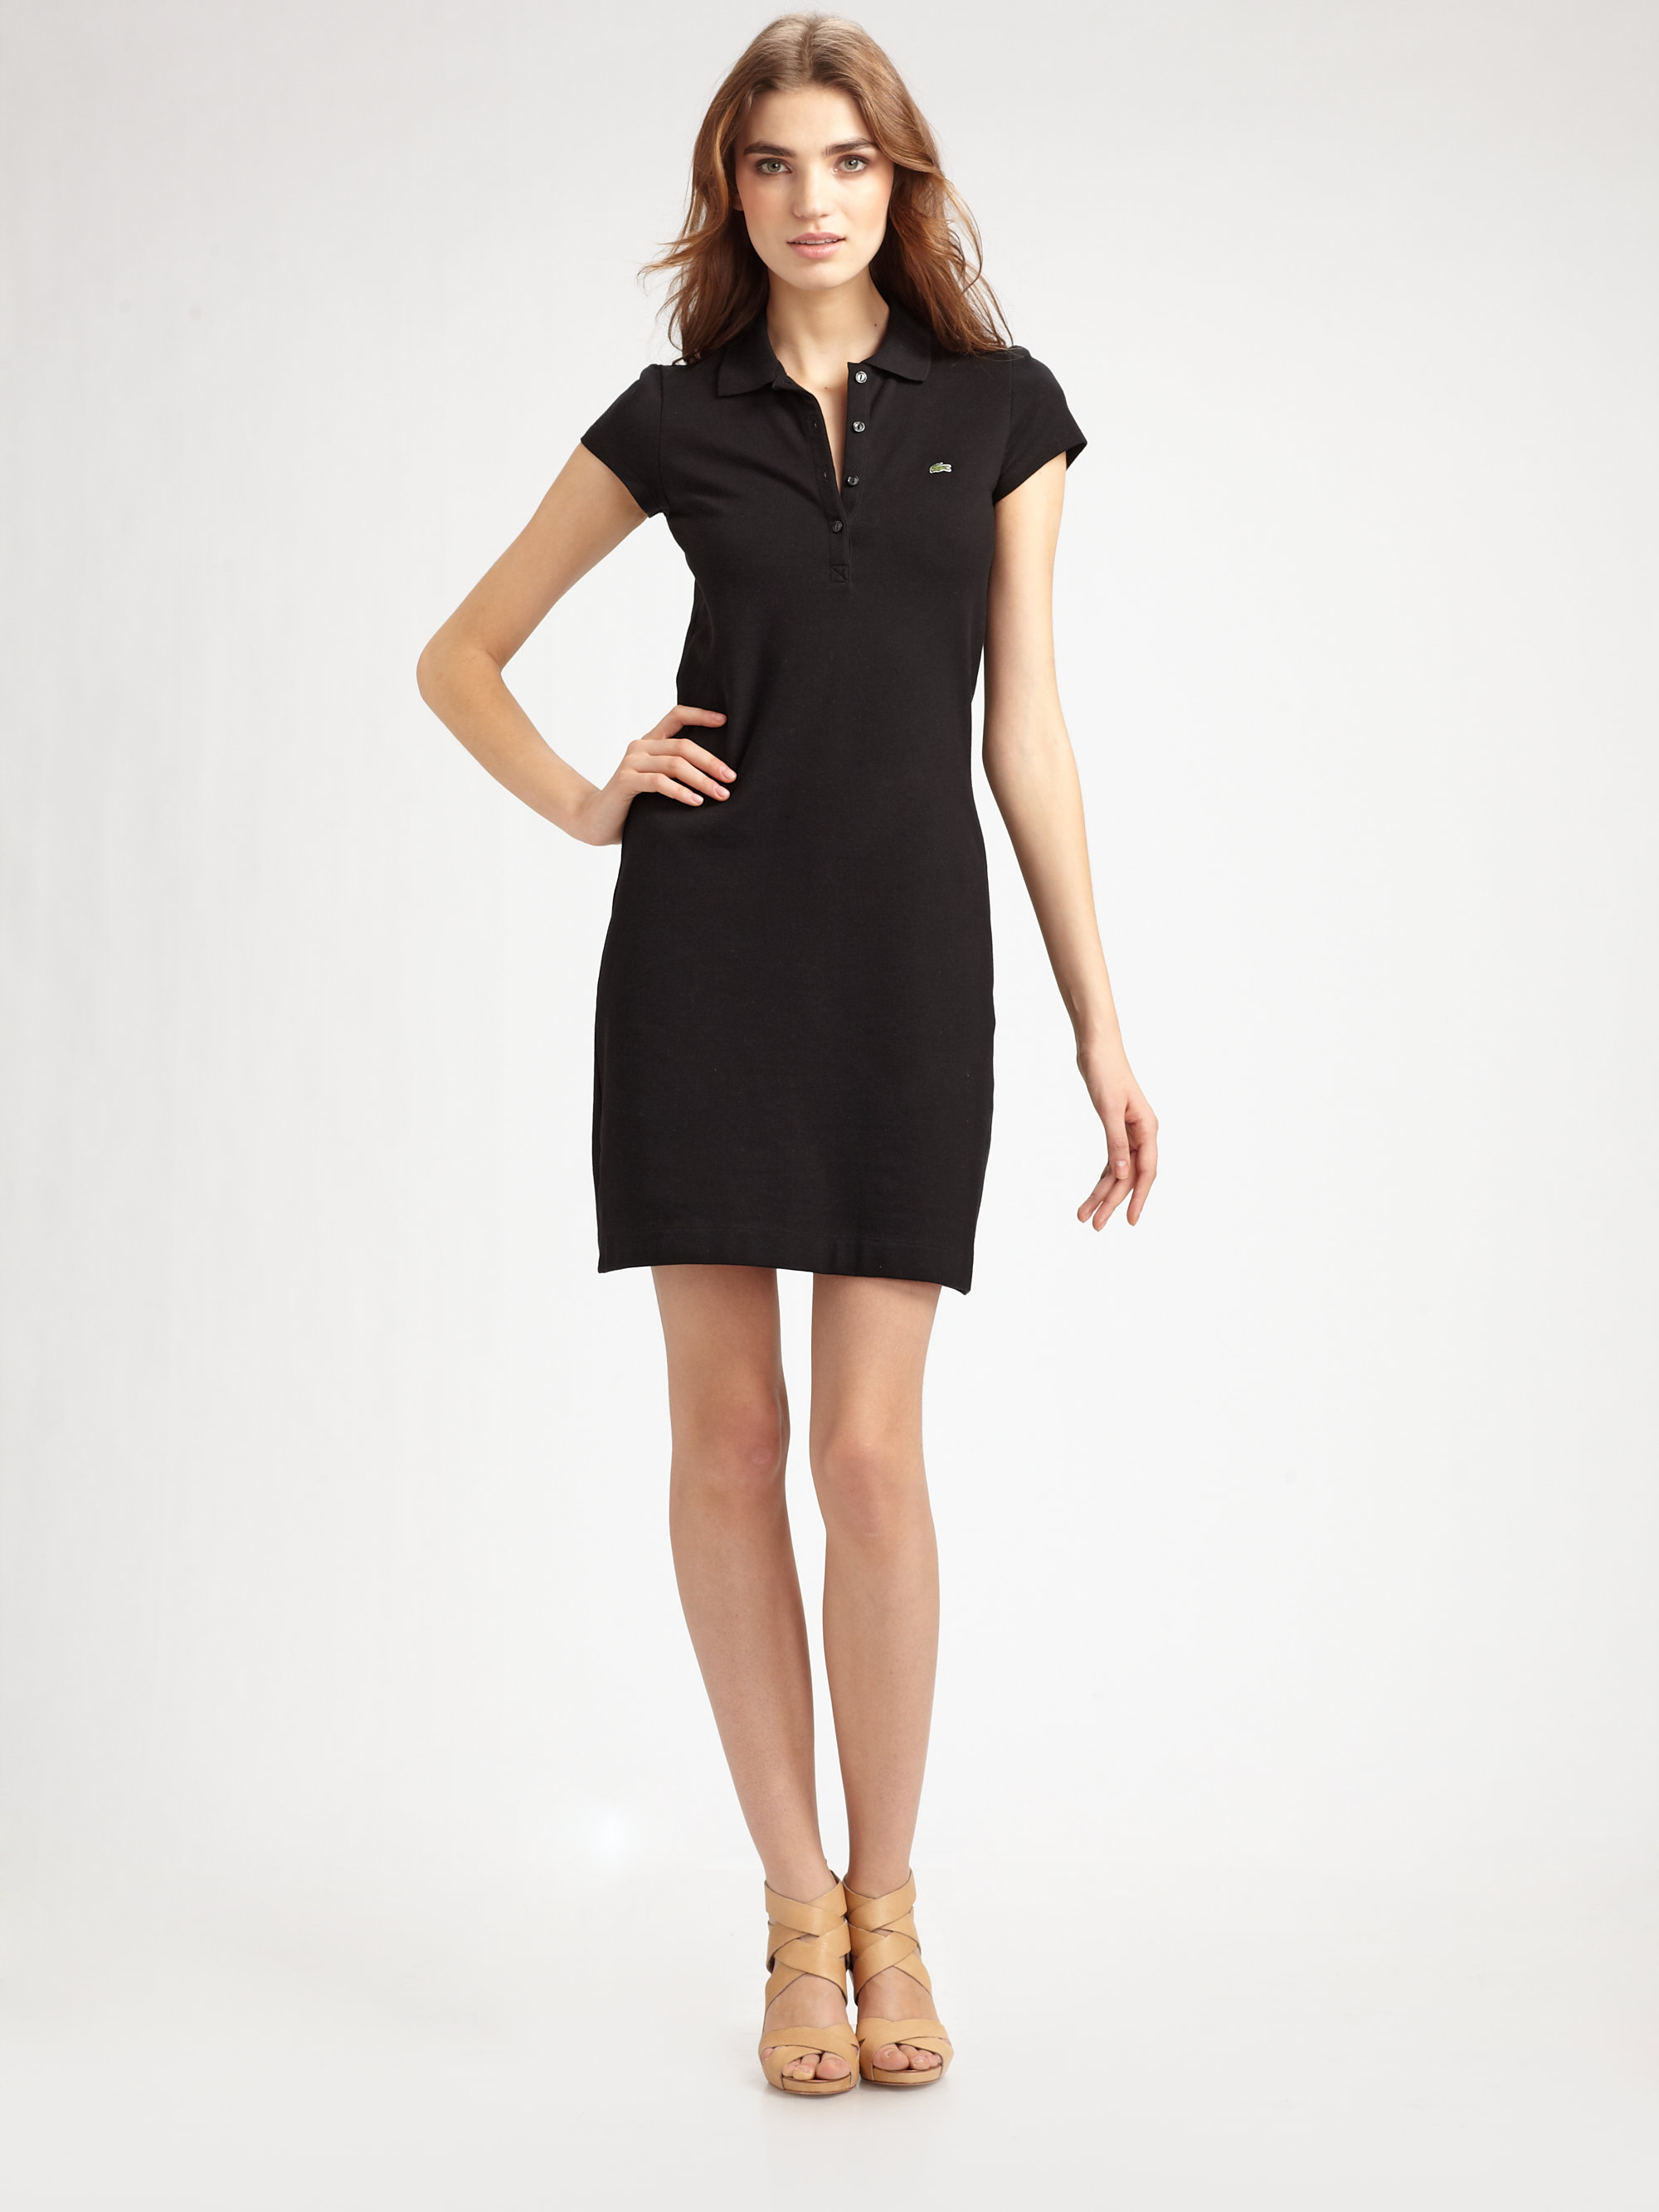 a2a97a1b7ca622 Lyst - Lacoste Stretchcotton Polo Dress in Black